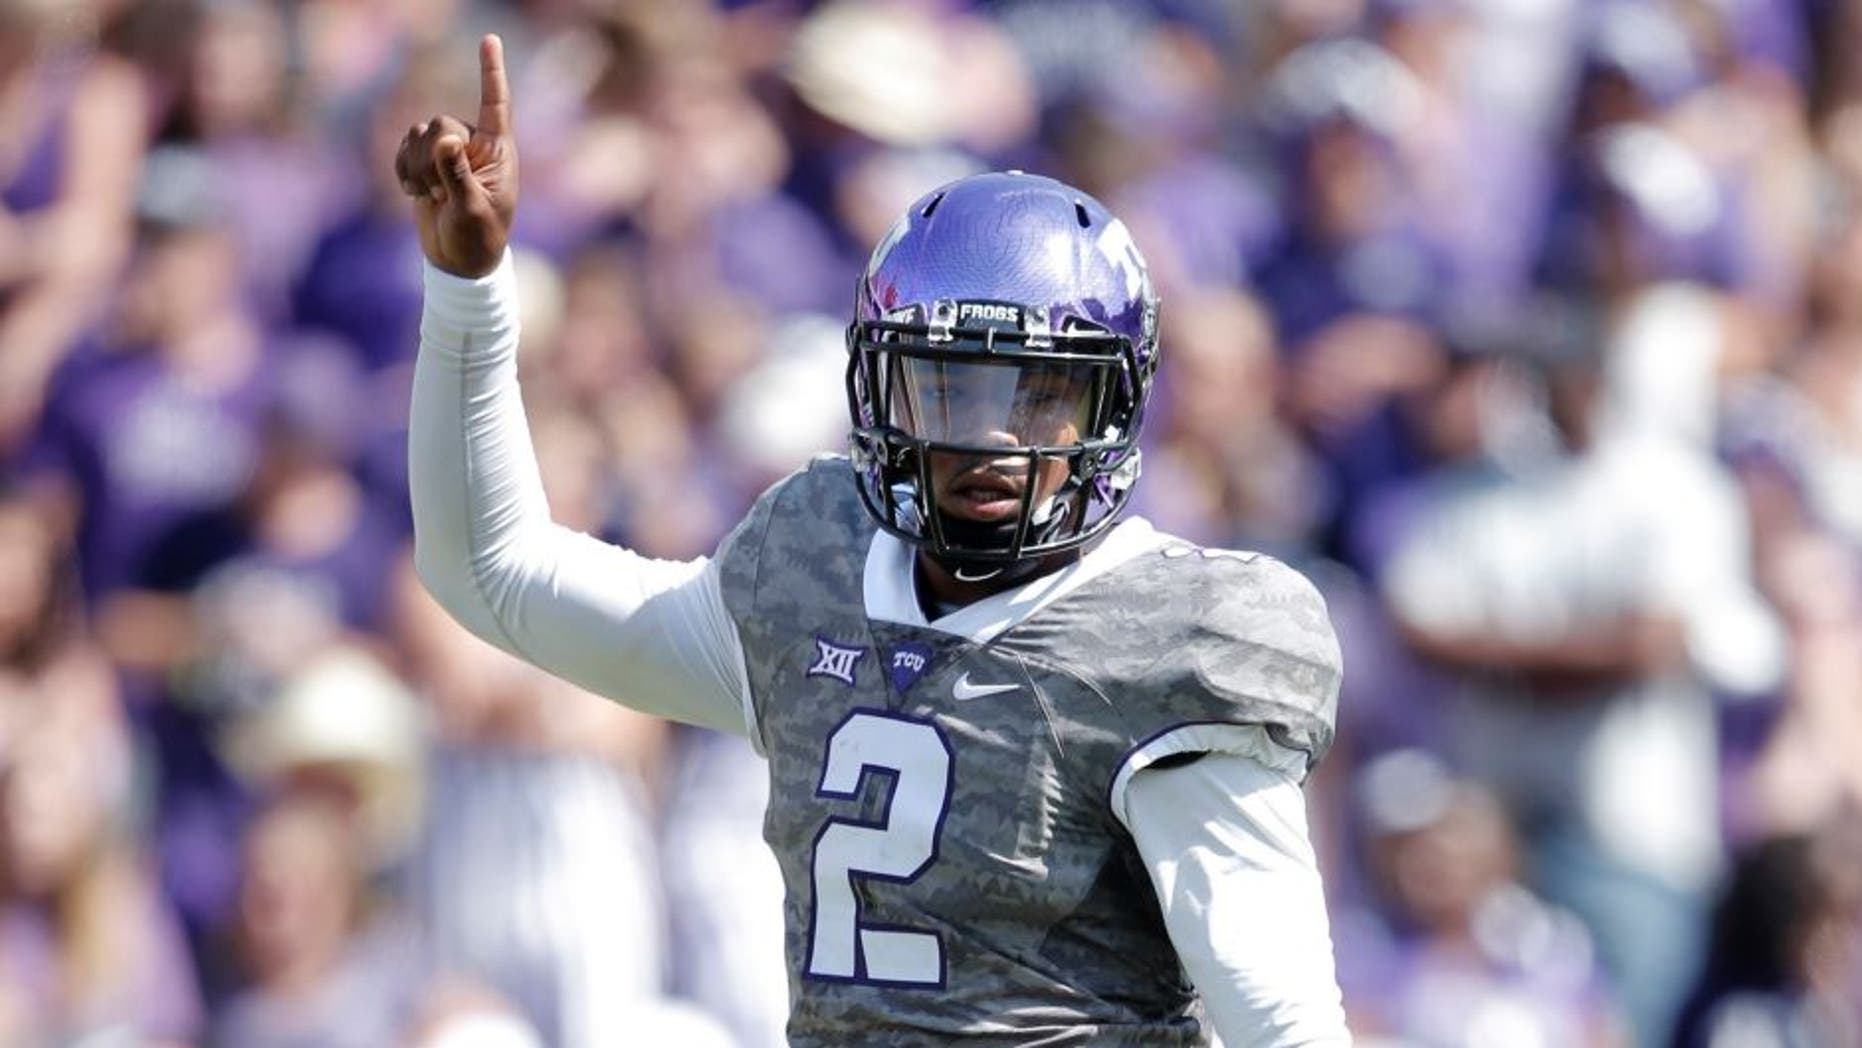 Oct 3, 2015; Fort Worth, TX, USA; Texas Christian University Horned Frogs quarterback Trevone Boykin (2) celebrates a first down against the University of Texas Longhorns in the third quarter at Amon G. Carter Stadium. Mandatory Credit: Erich Schlegel-USA TODAY Sports